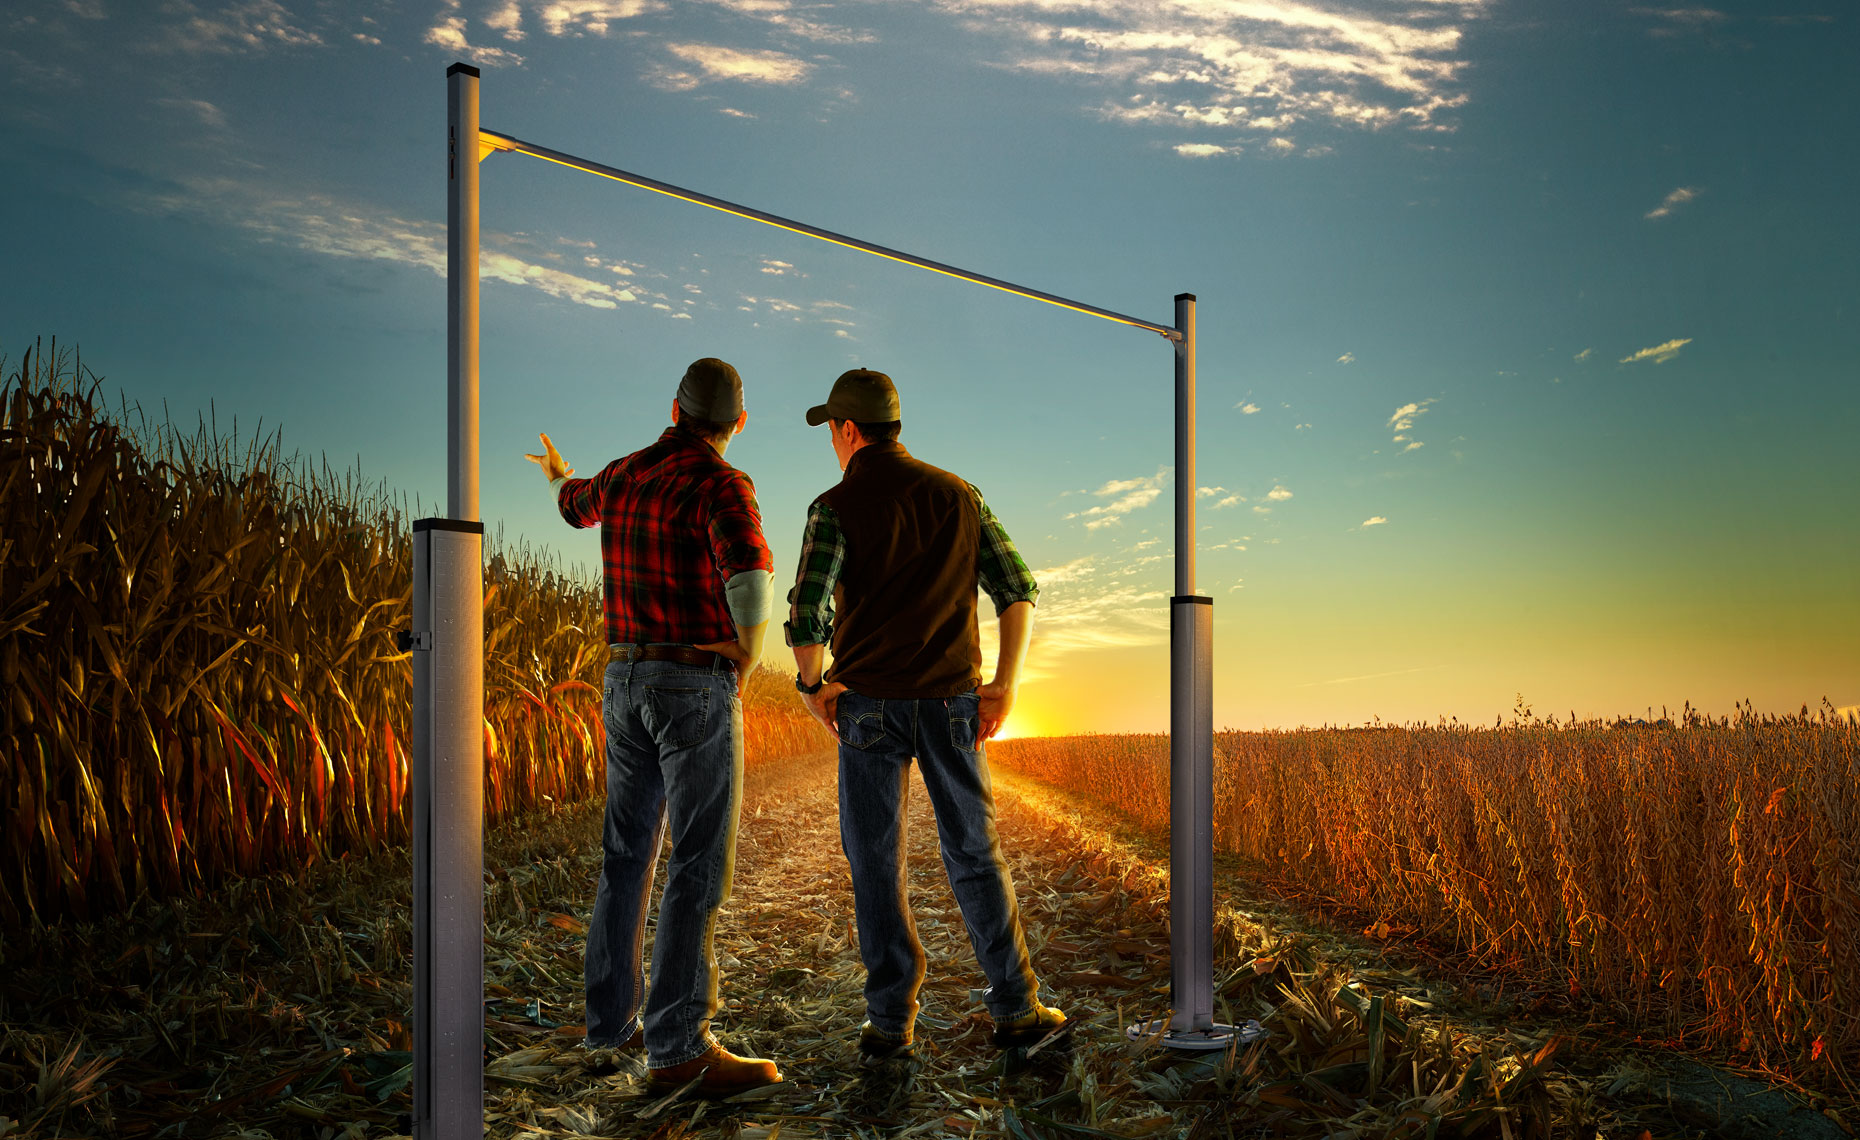 Corn and soybean farmers viewing  their crop field at sunrise.